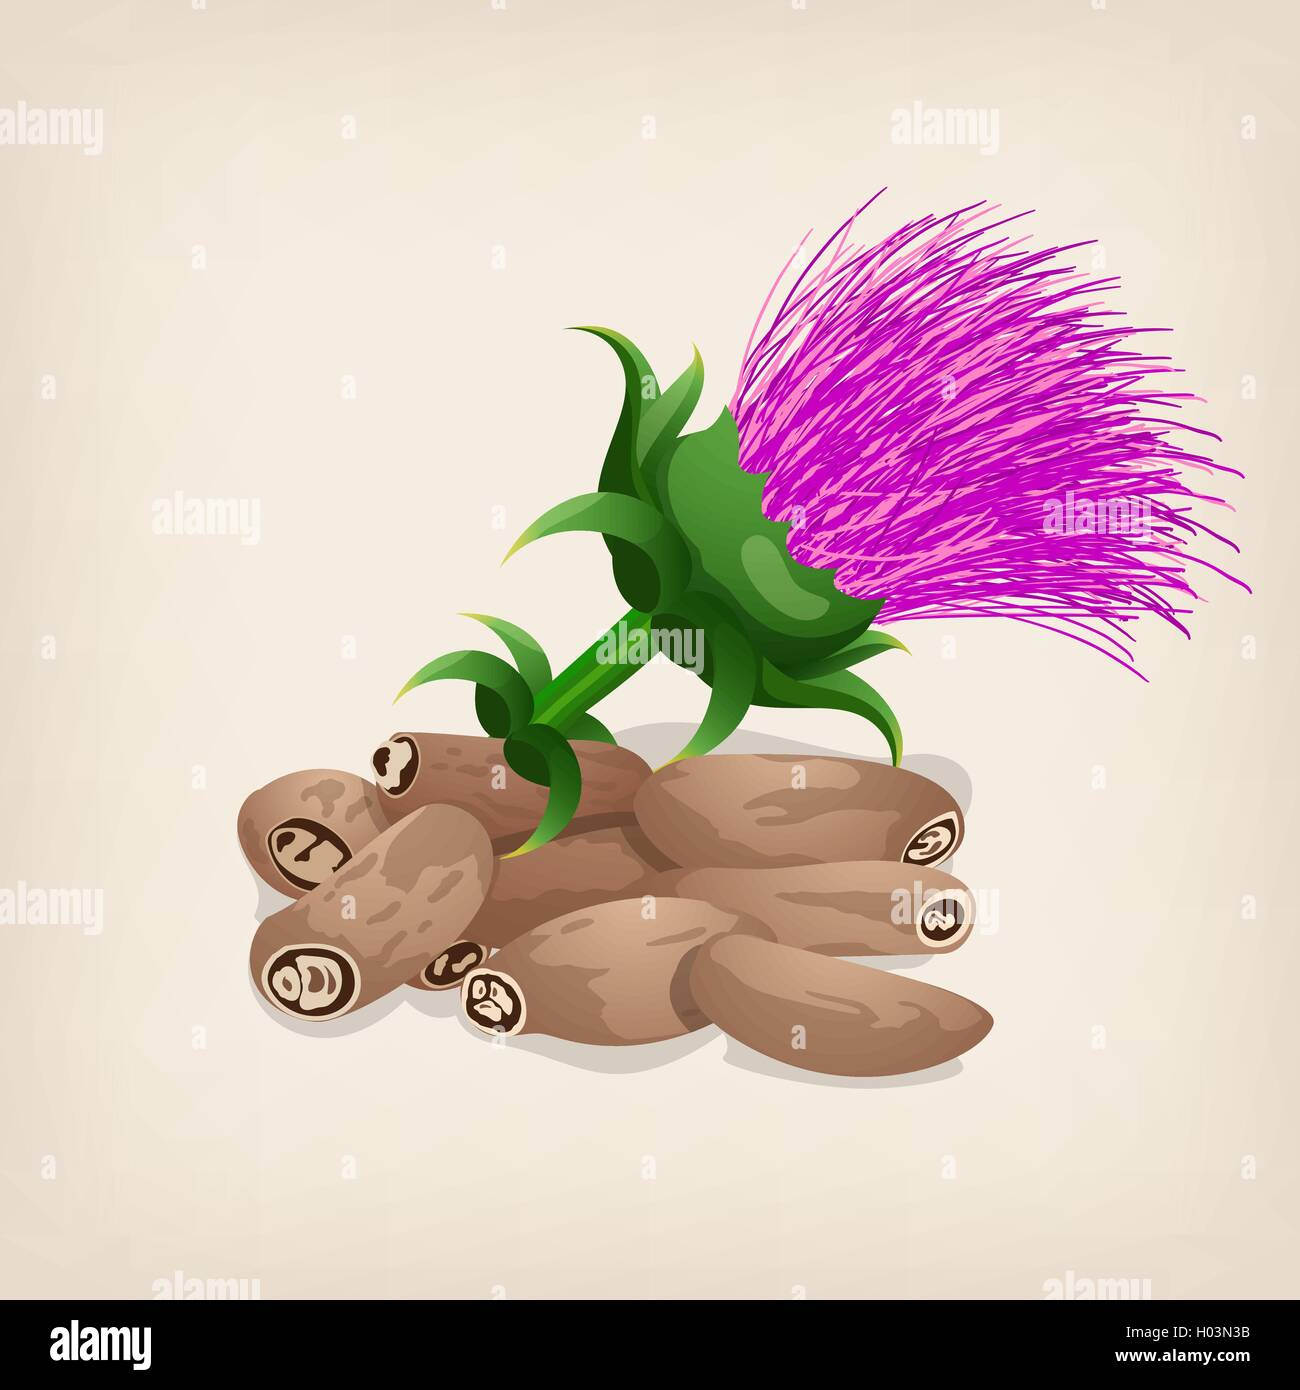 Seeds of a milk thistle with flowers (Silybum marianum, Scotch Thistle, Marian thistle). Vector illustration. - Stock Image